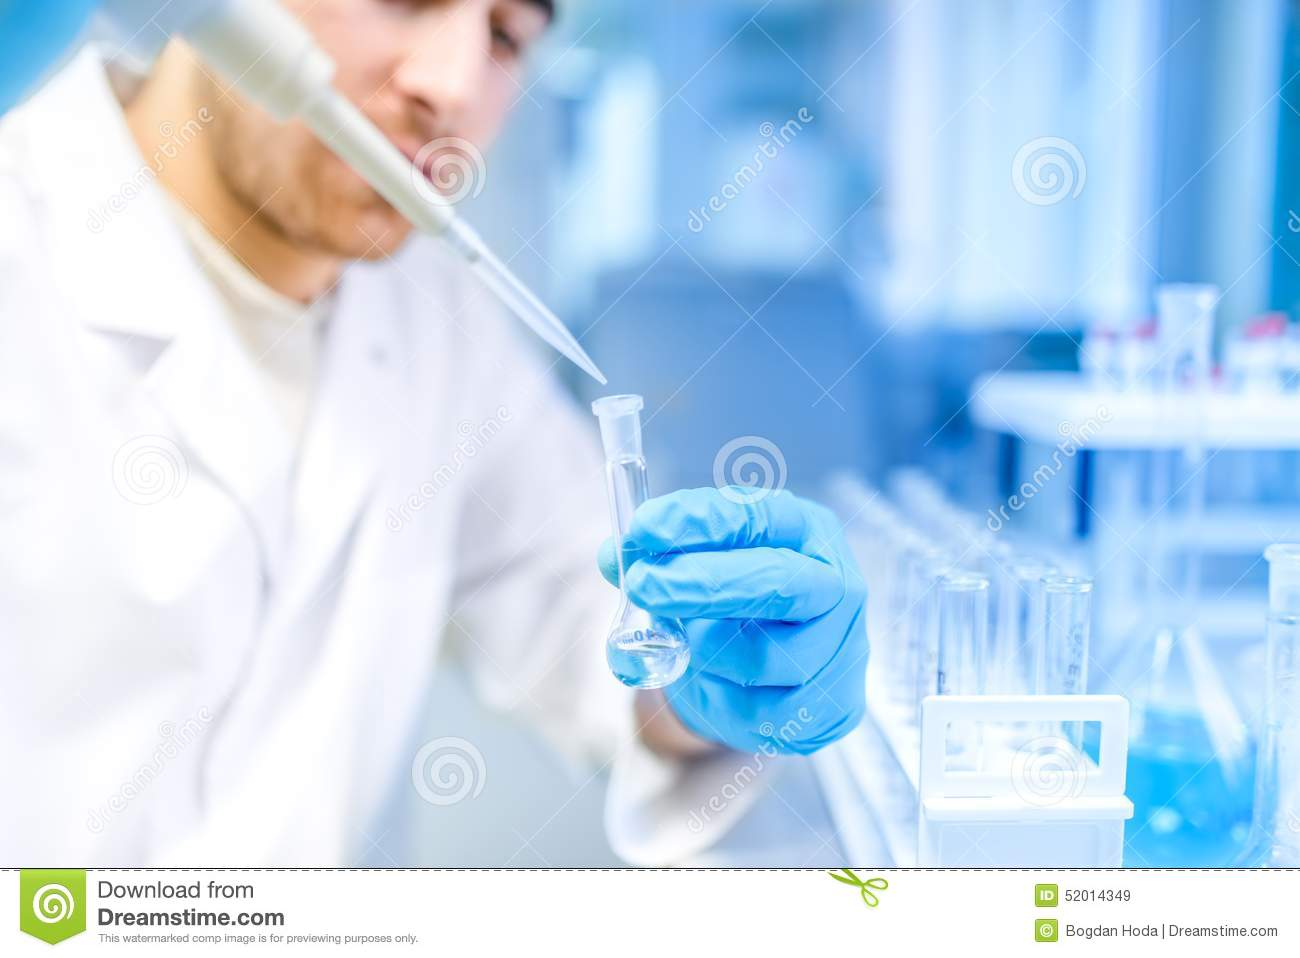 Scientist using medical tool for extraction of liquid from samples in special laboratory or medical room